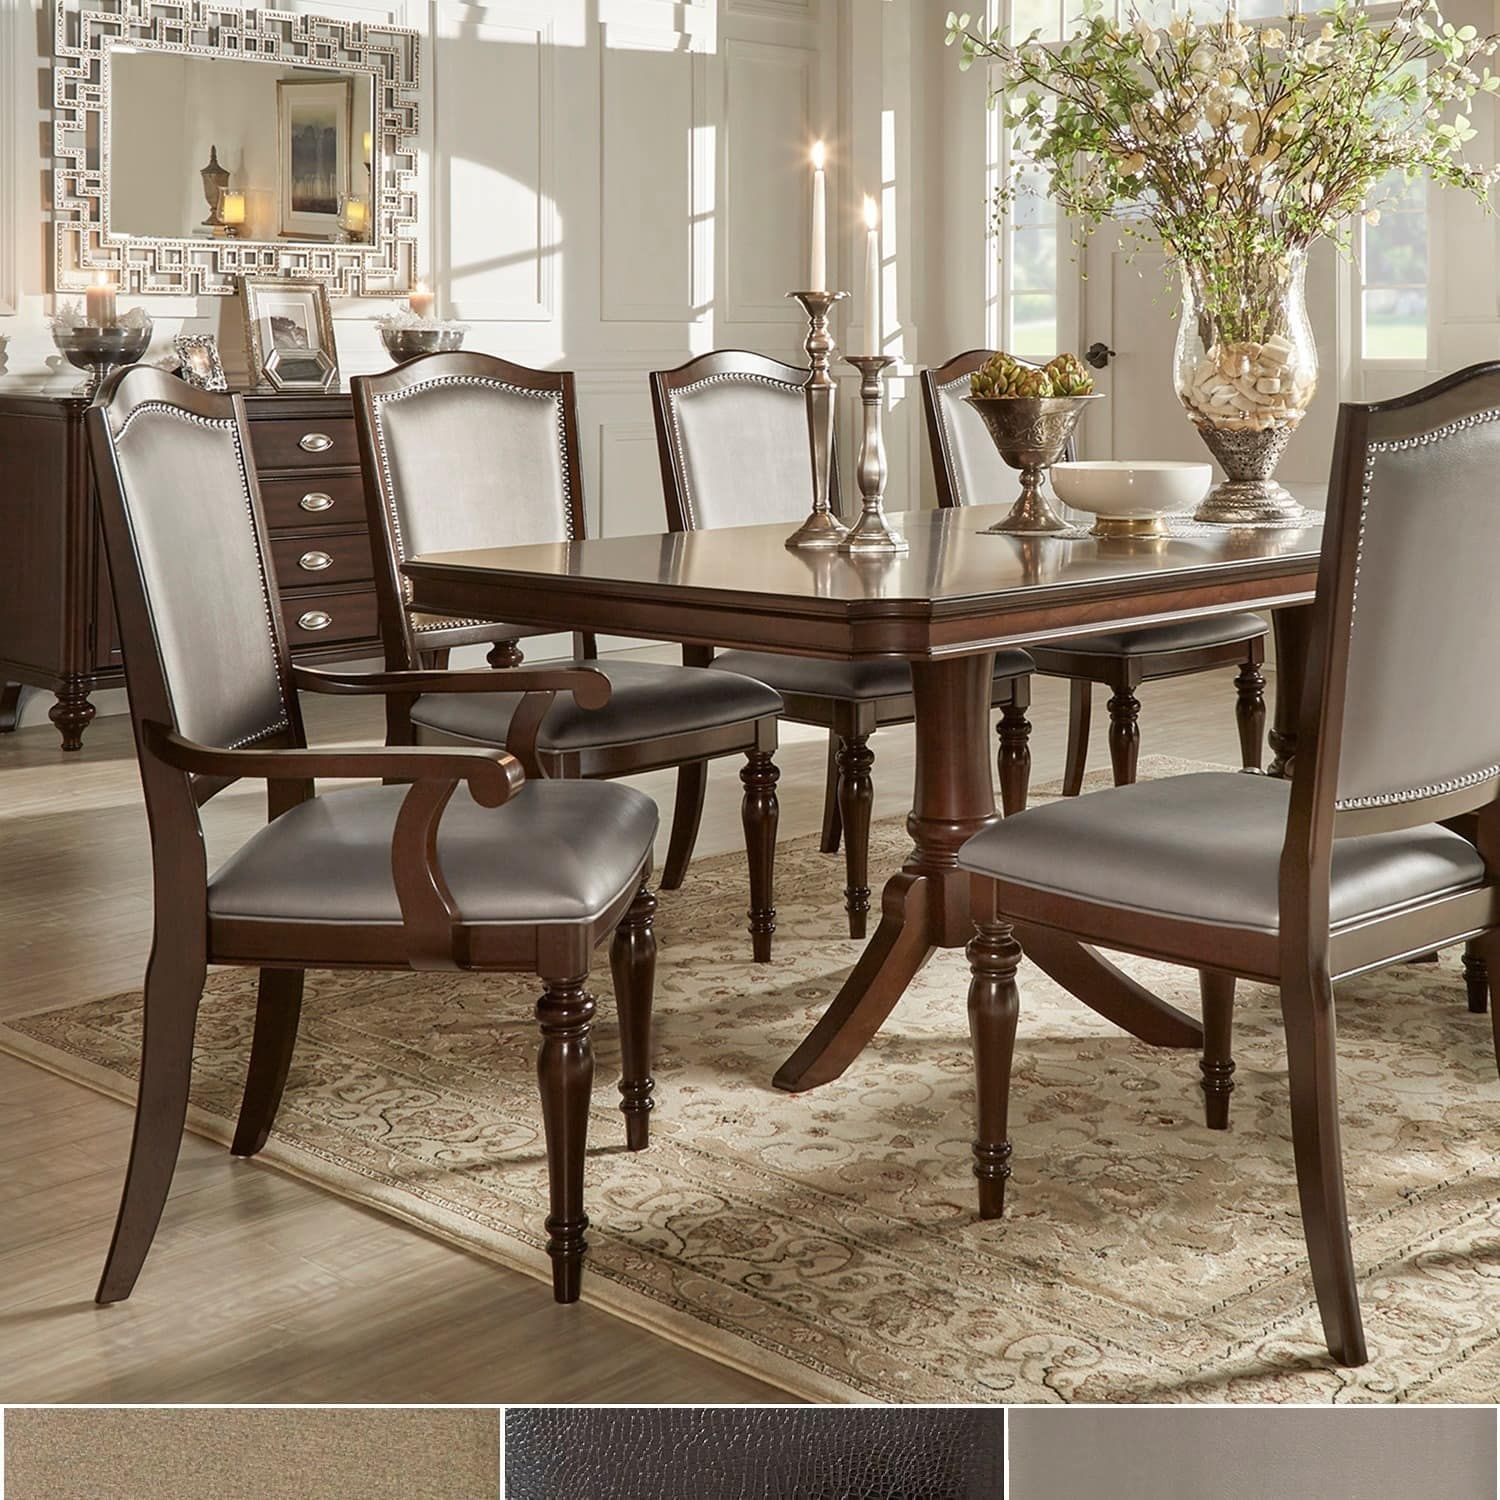 LaSalle Espresso Pedestal Extending Table Dining Set by iNSPIRE Q Classic  ([9-Piece]- Brown Fabric- 6 Side + 2 Arm Chairs), Size 9-Piece Sets